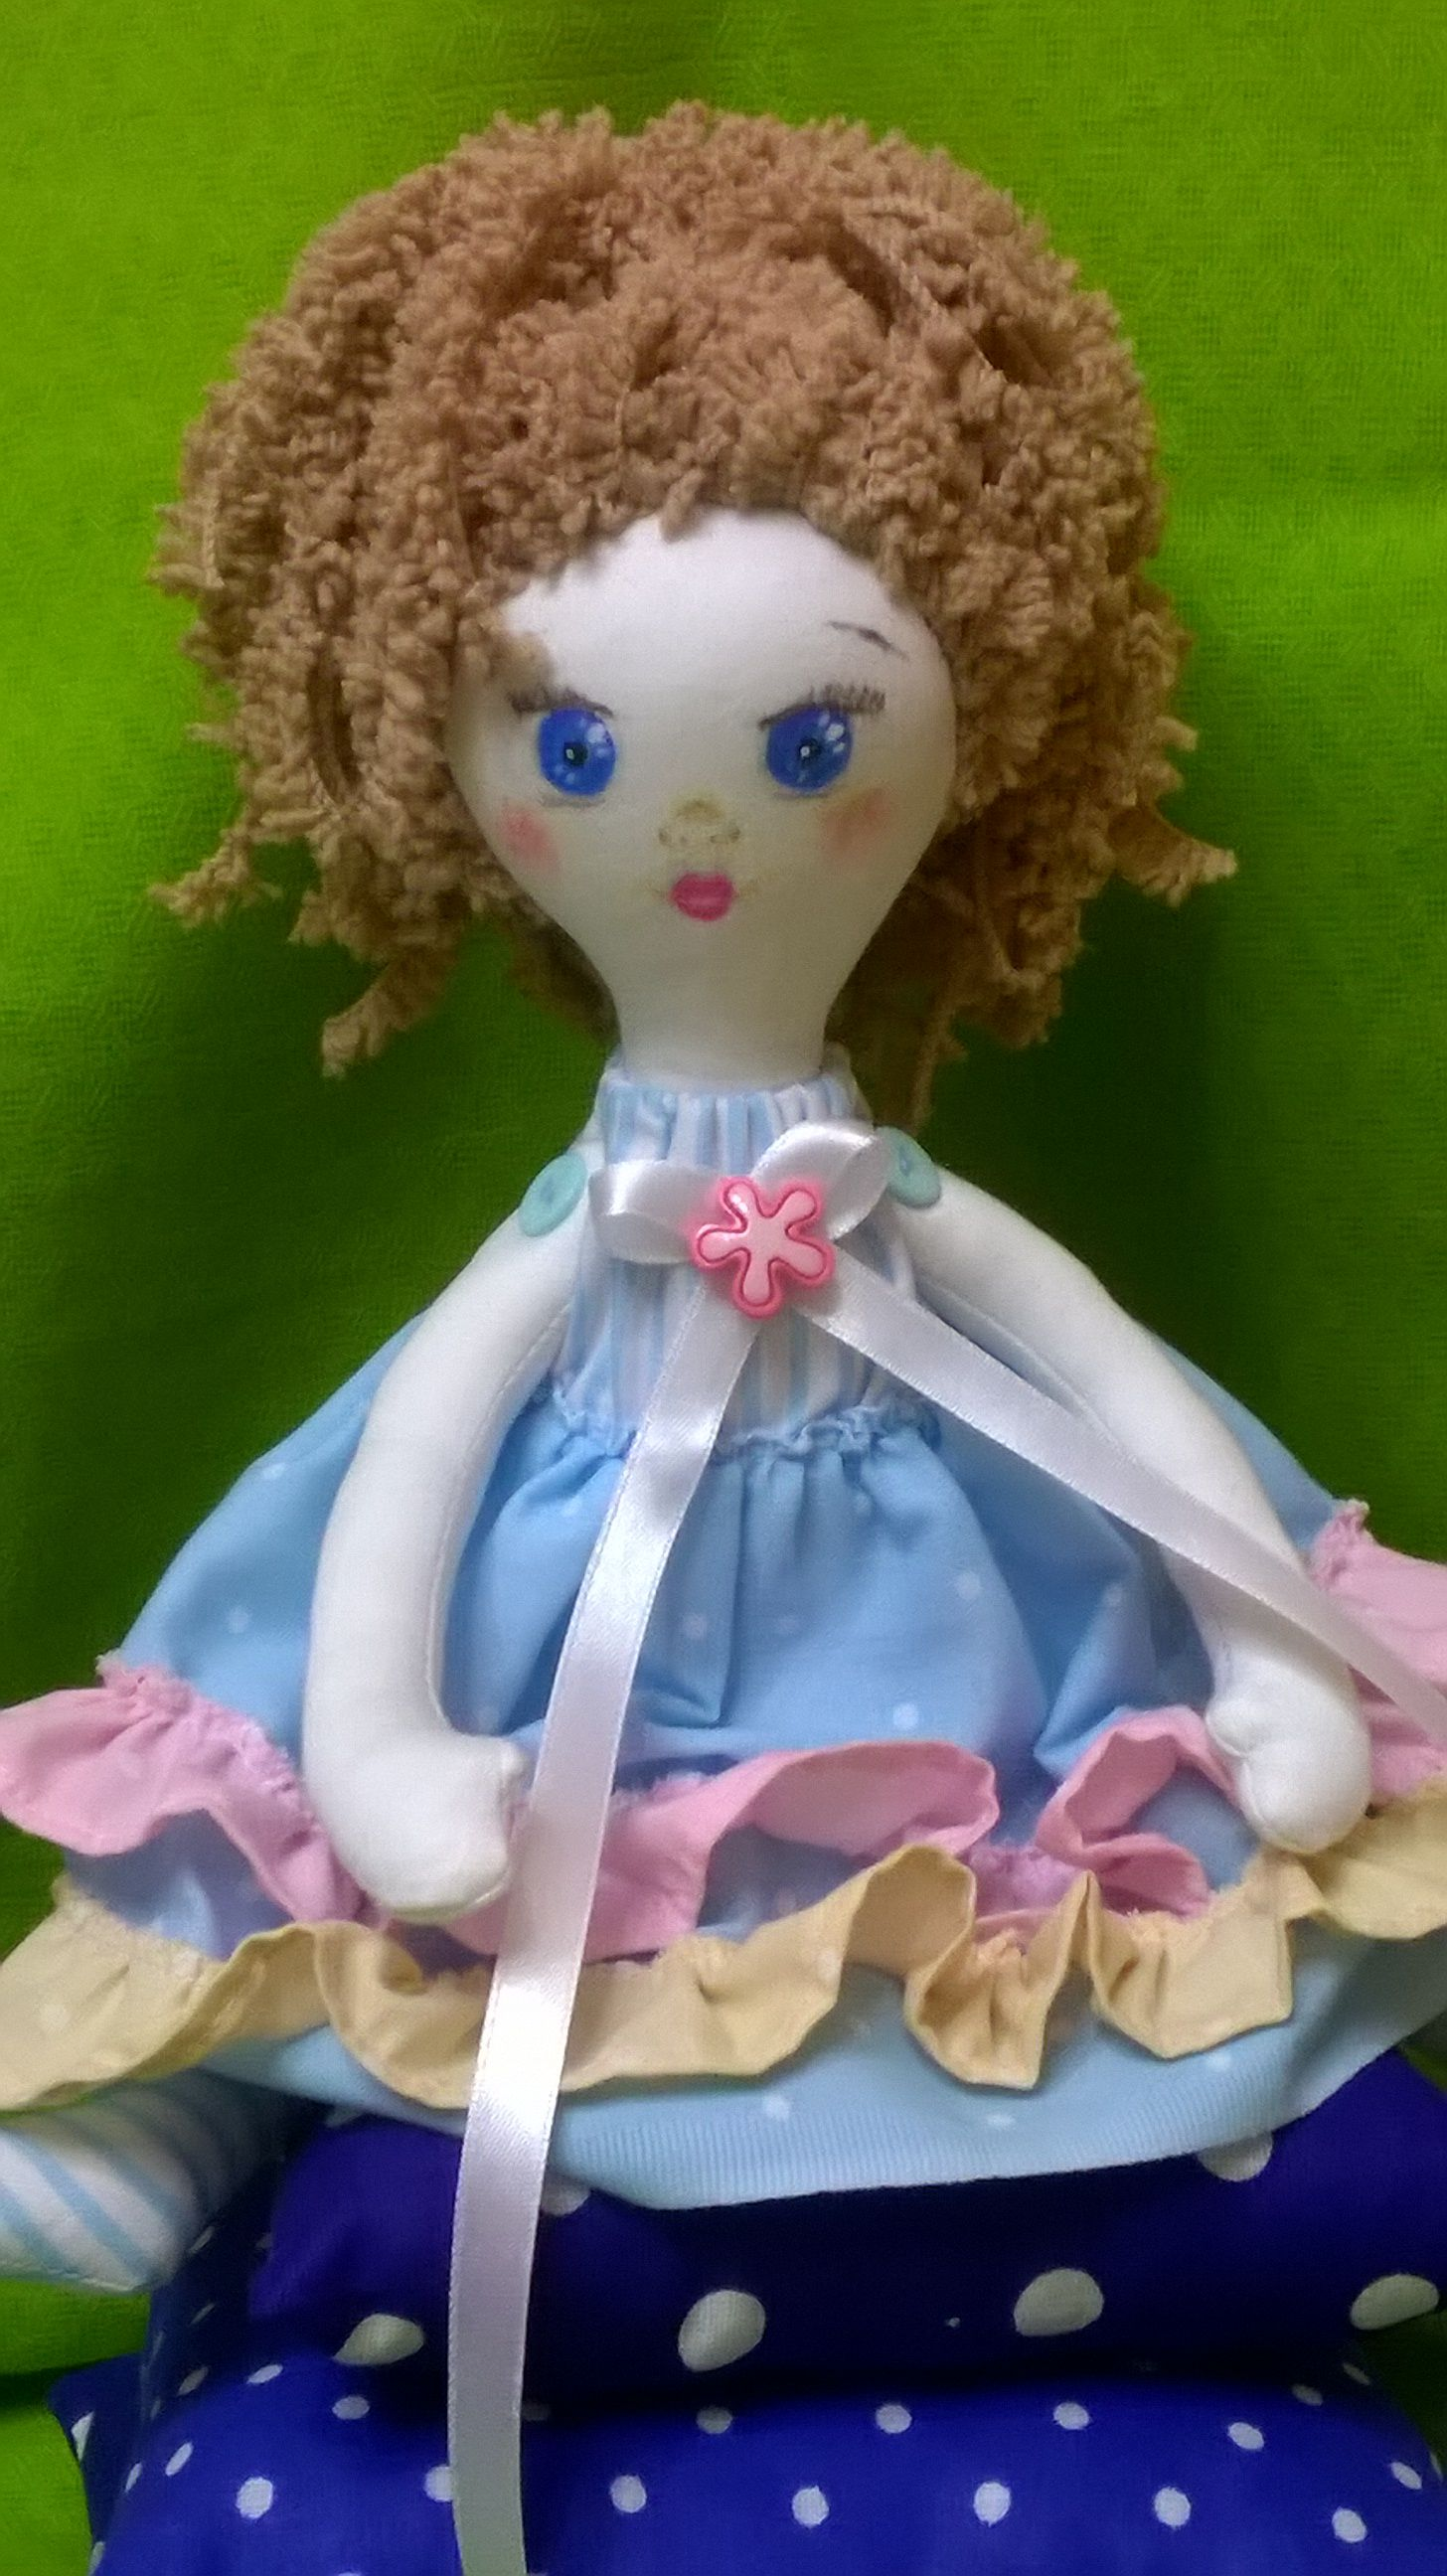 toy textile fairytale princess